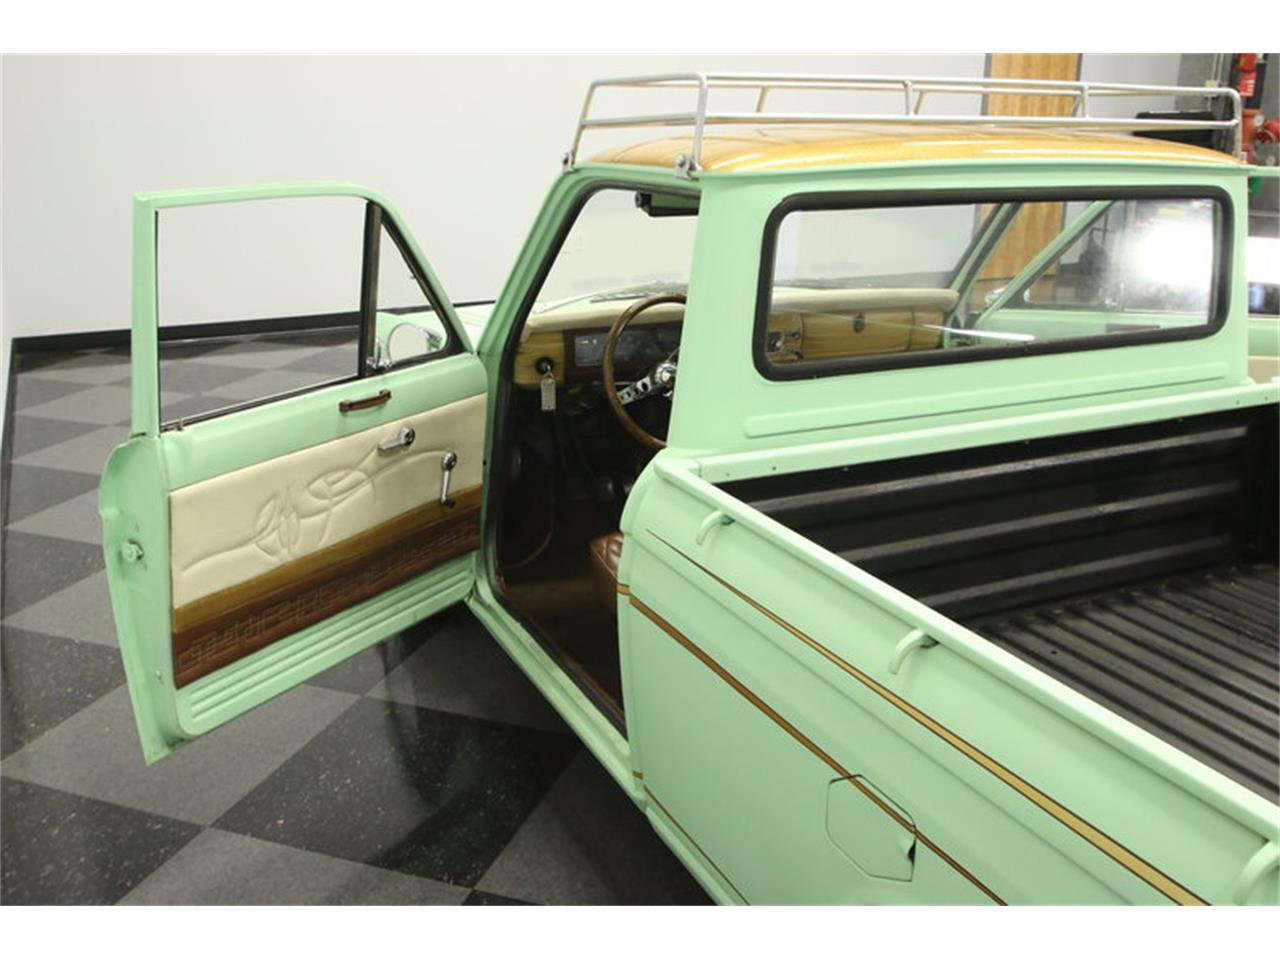 Large Picture of '72 1600 520 Pickup located in Florida - $9,995.00 Offered by Streetside Classics - Tampa - MB90